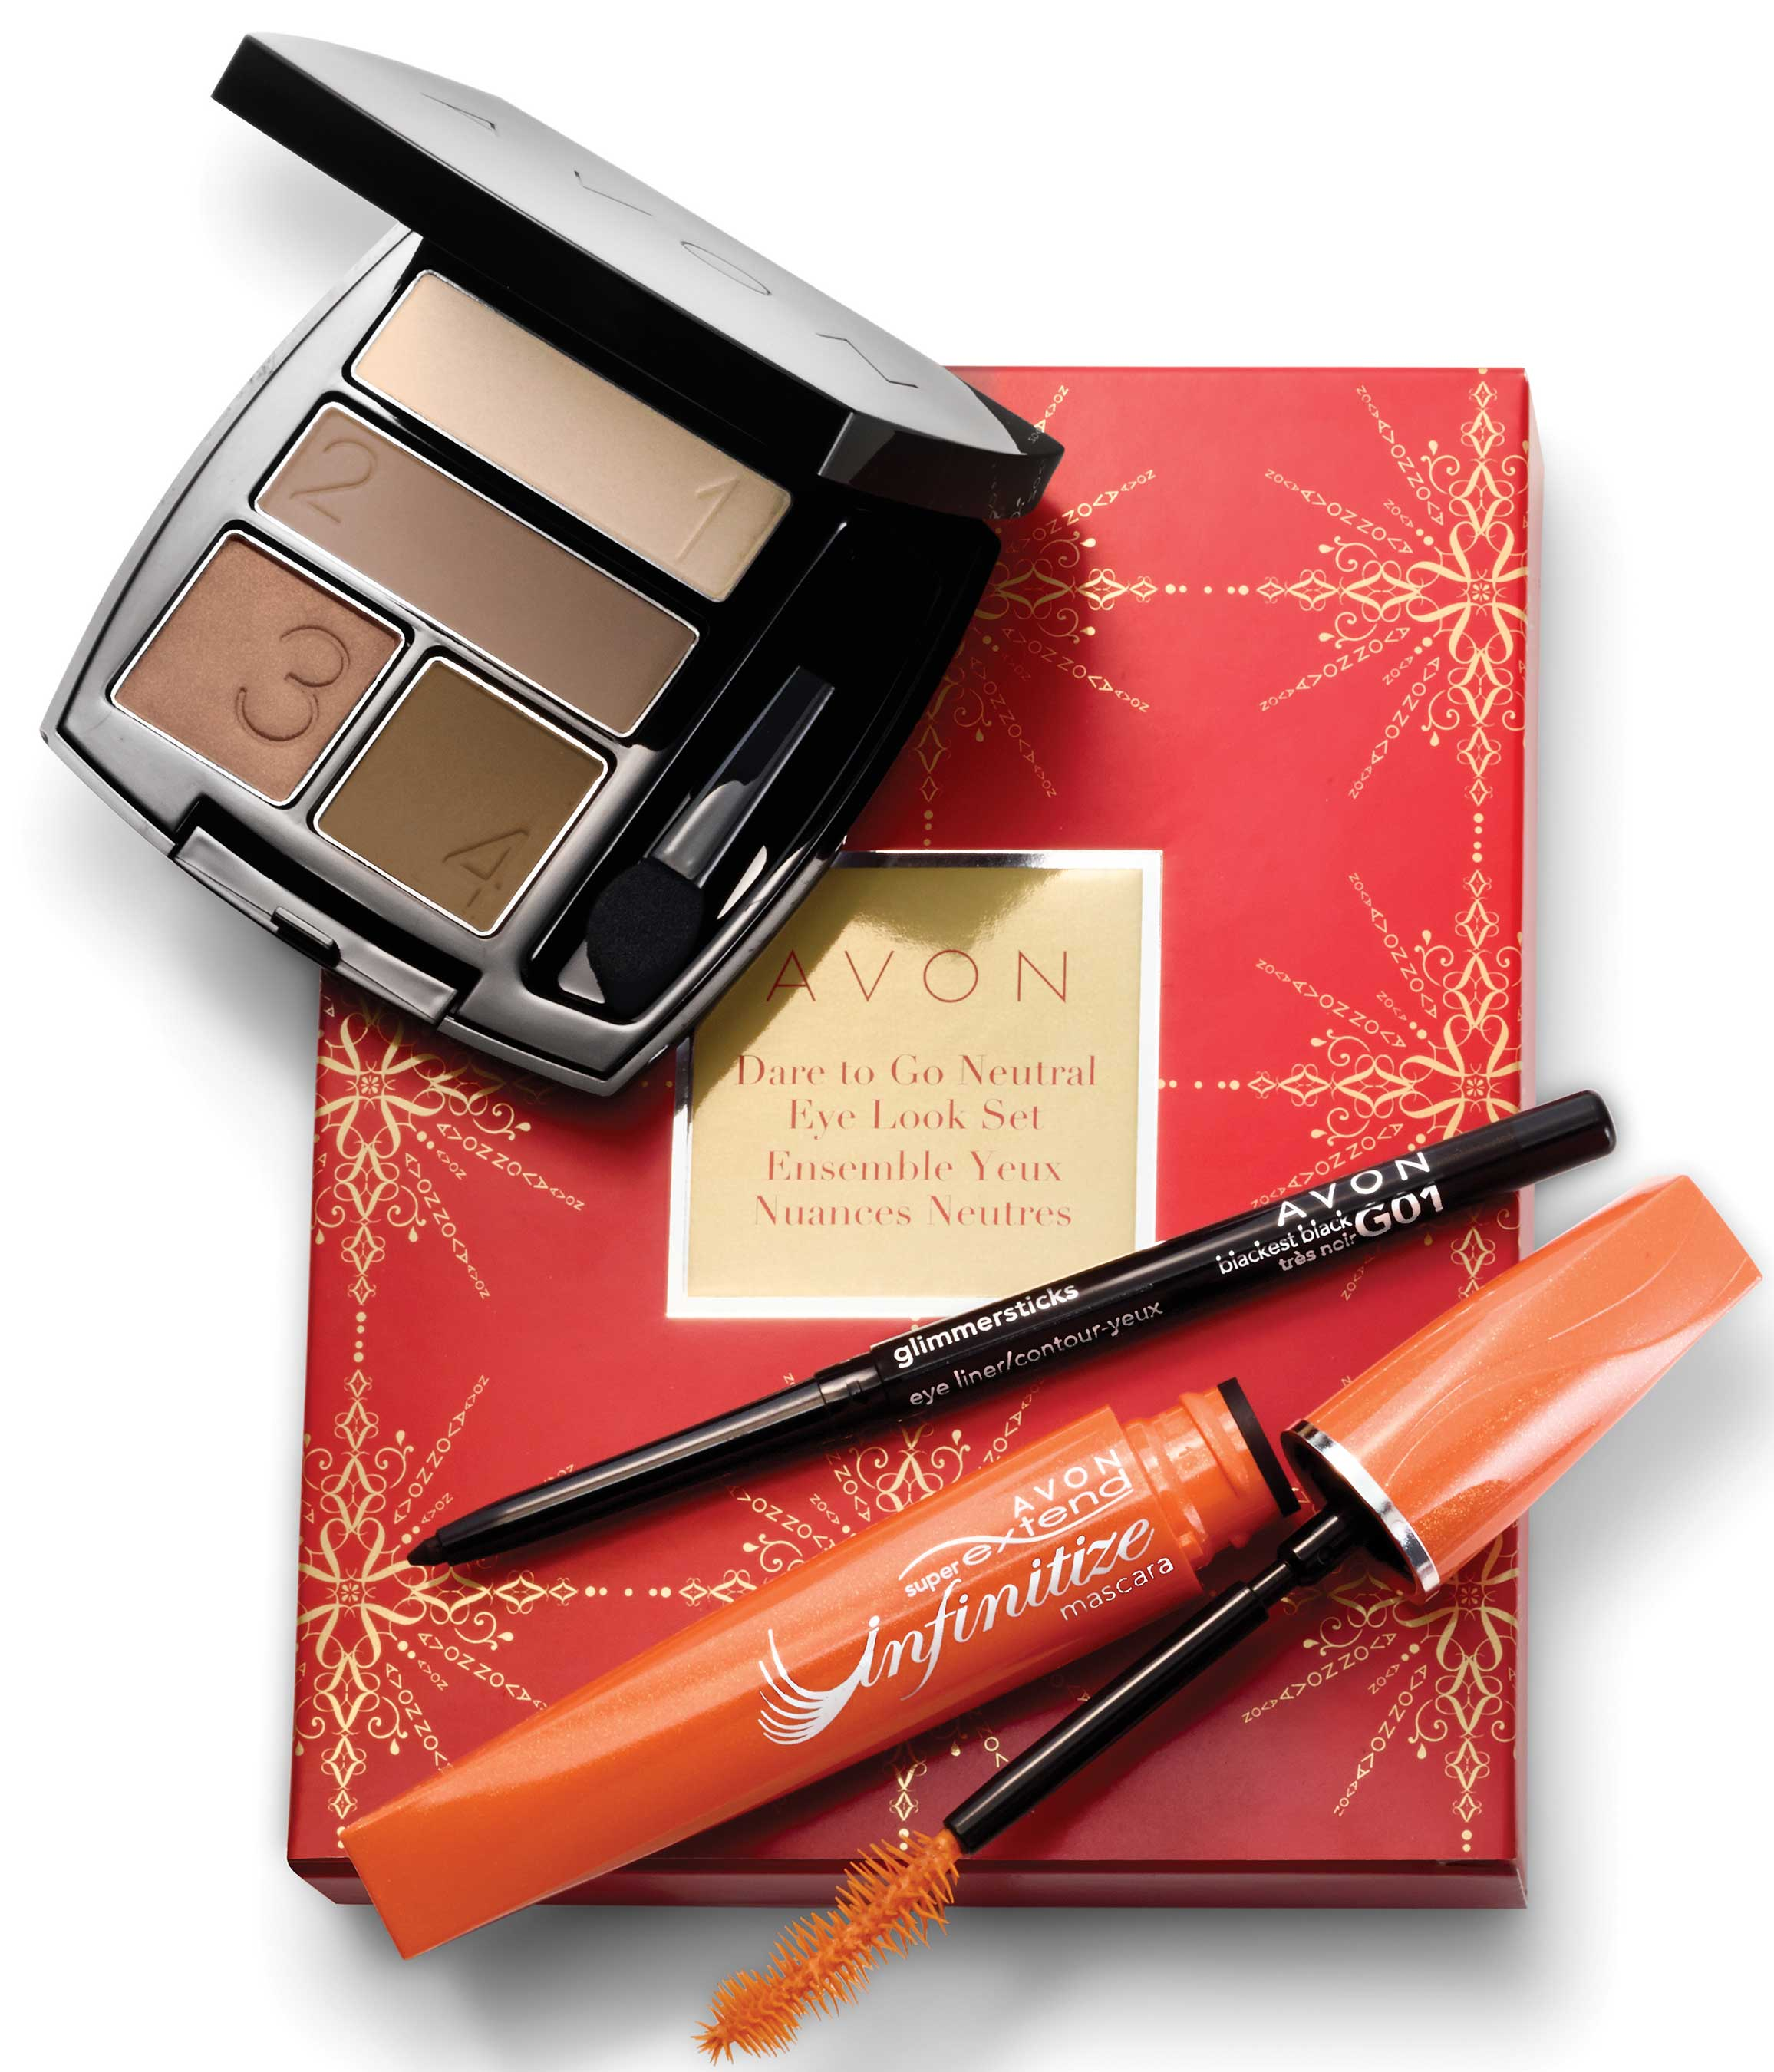 Avon Dare to Go Natural Eye Look Set: Everything you need to create a beautifully natural and sophisticated eye look. This go-to includes a True Eyeshadow Quad, Kohl Eye Liner and Mascara ($14.99).